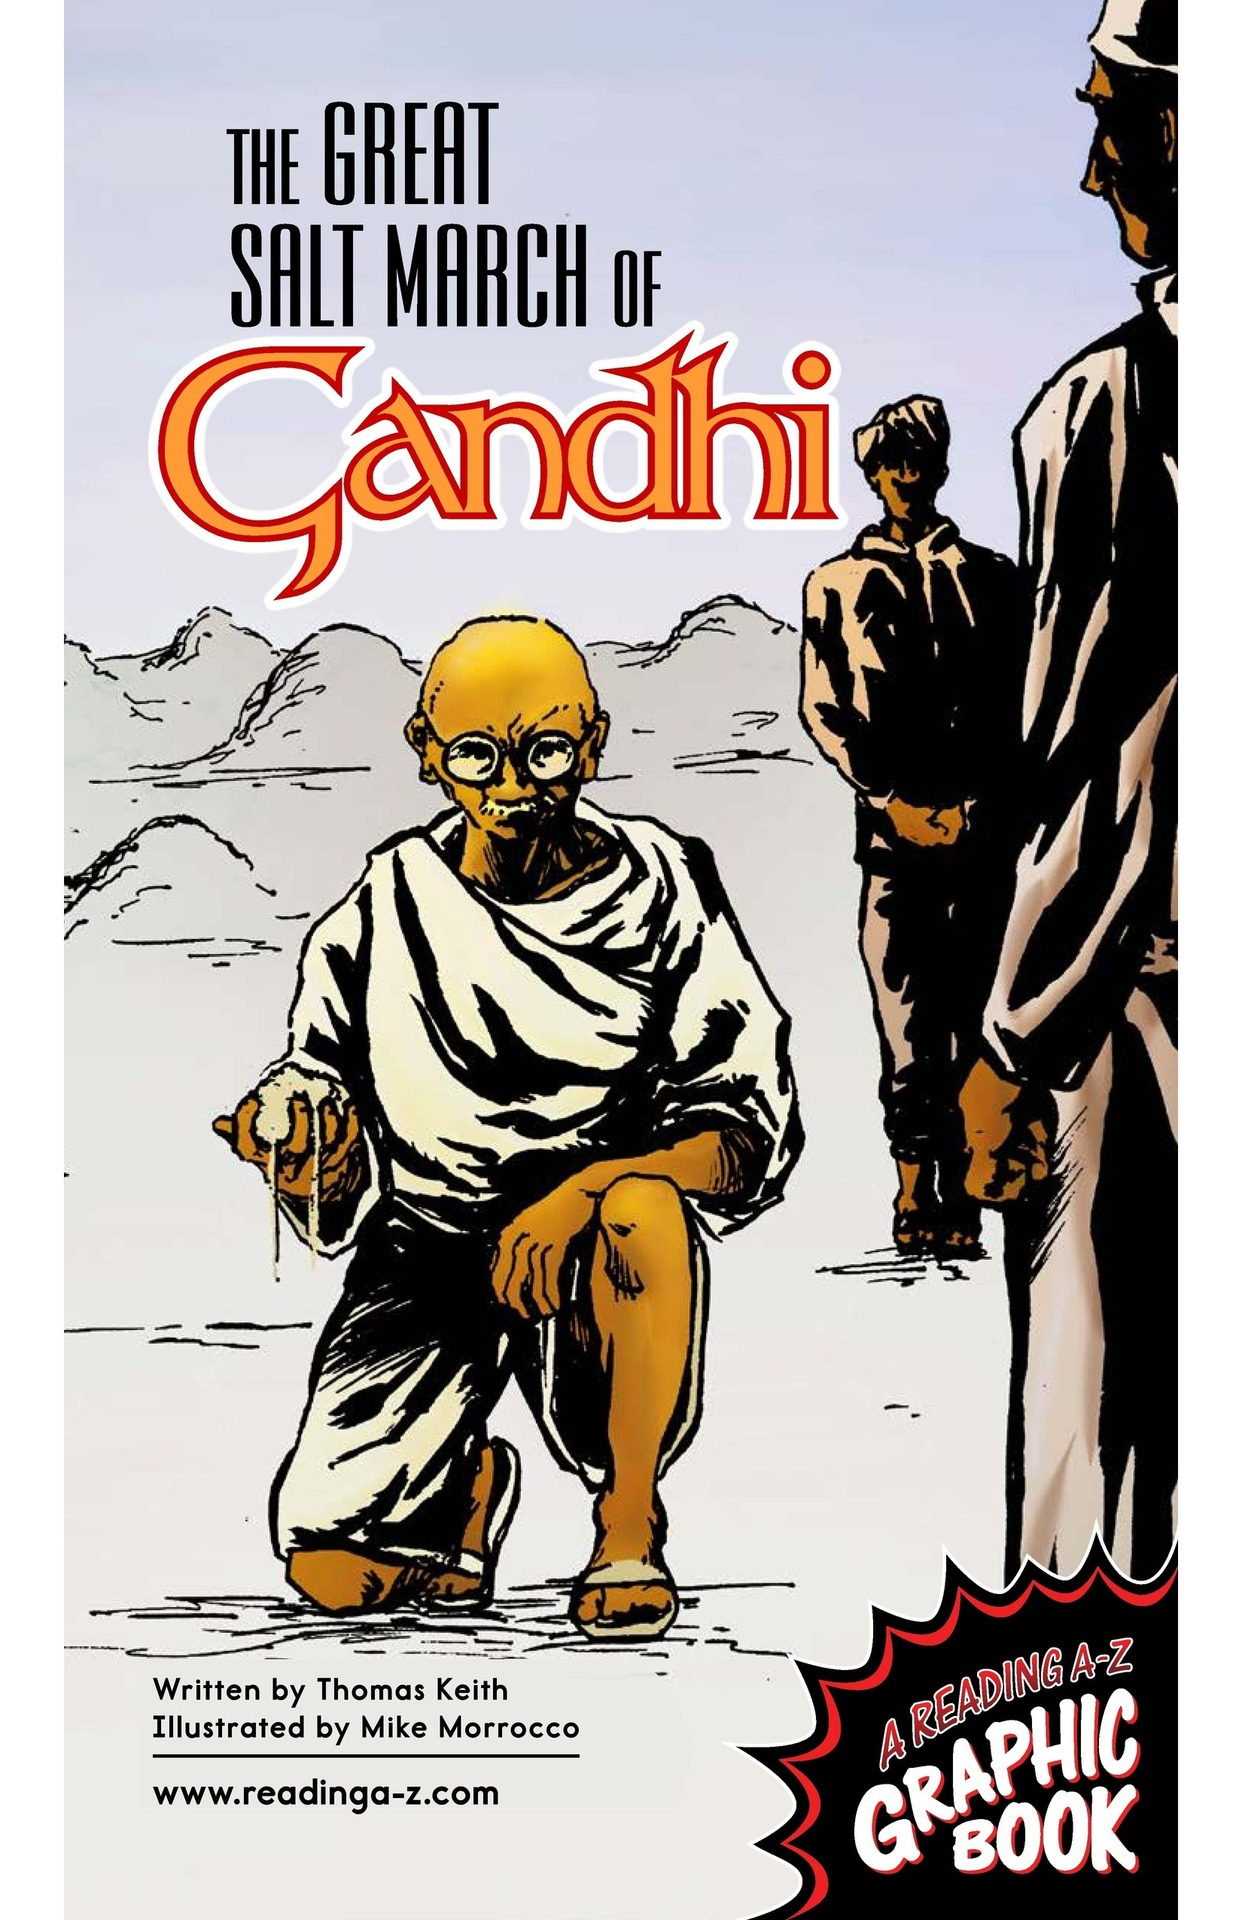 Book Preview For The Great Salt March of Gandhi Page 1